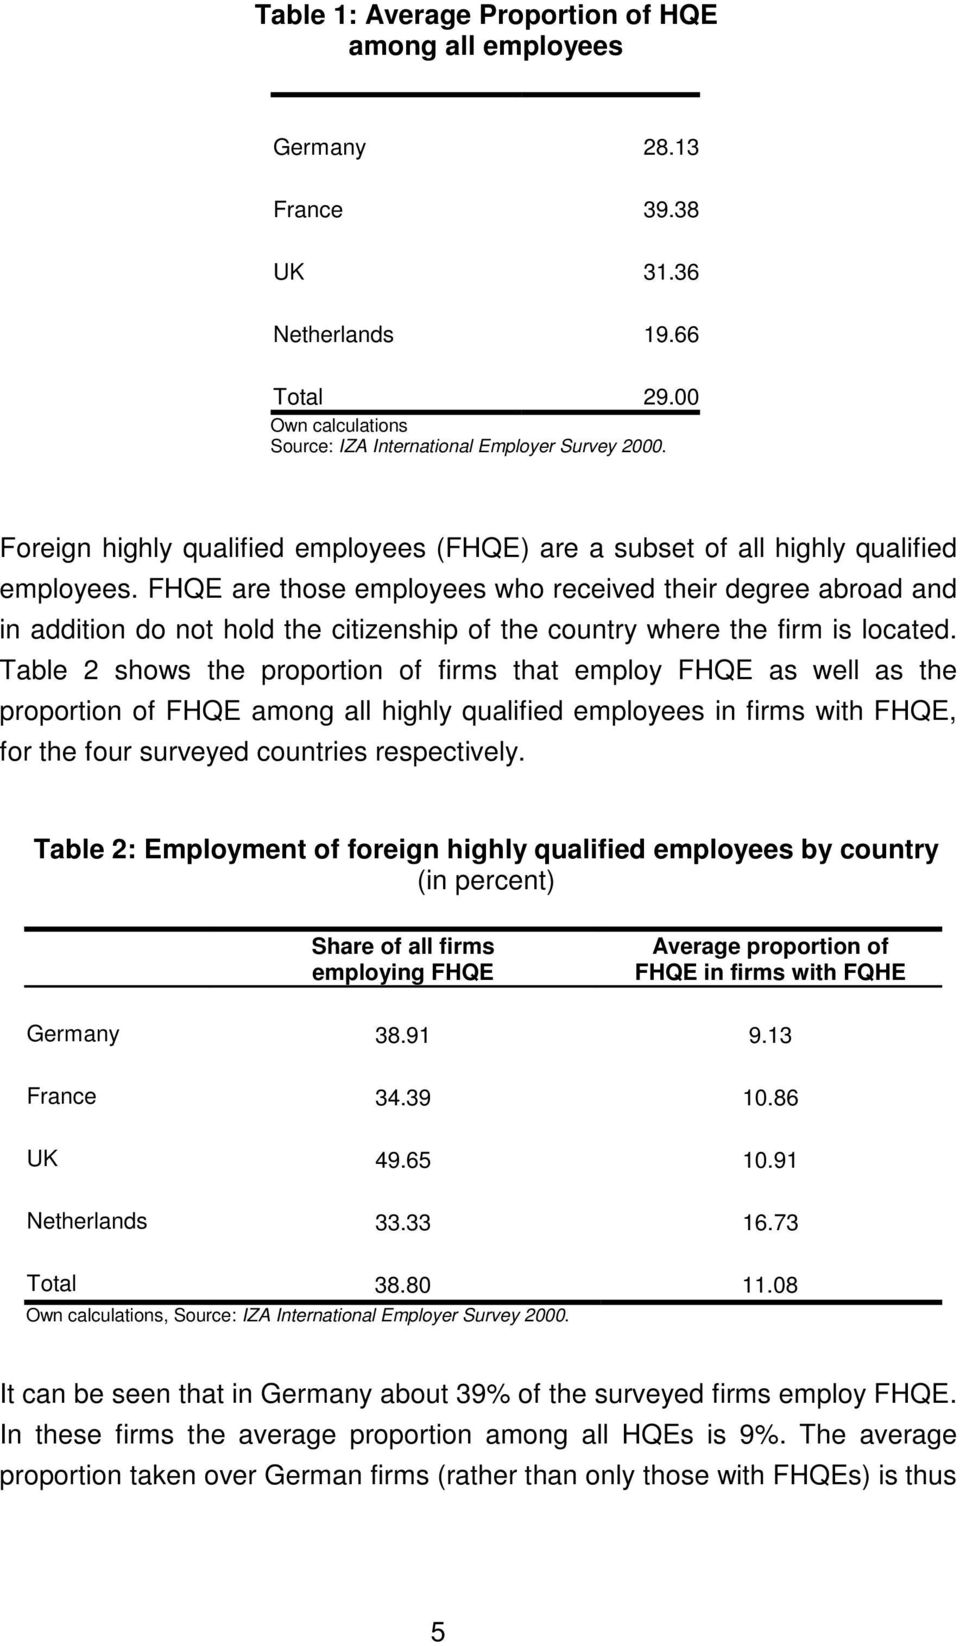 FHQE are those employees who received their degree abroad and in addition do not hold the citizenship of the country where the firm is located.